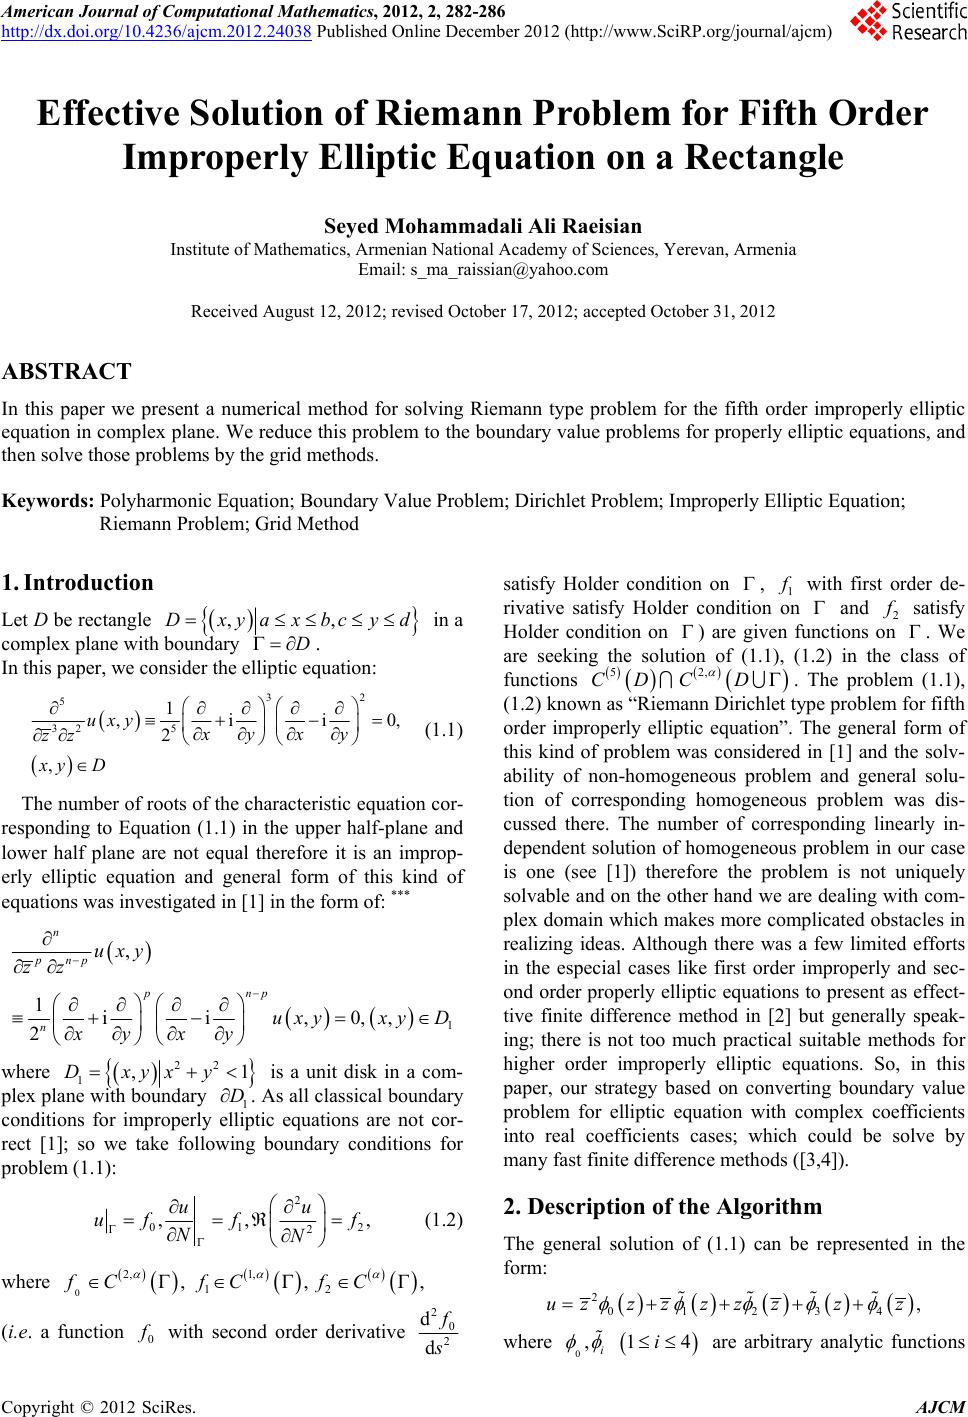 cauchy riemann equations problems and solutions pdf